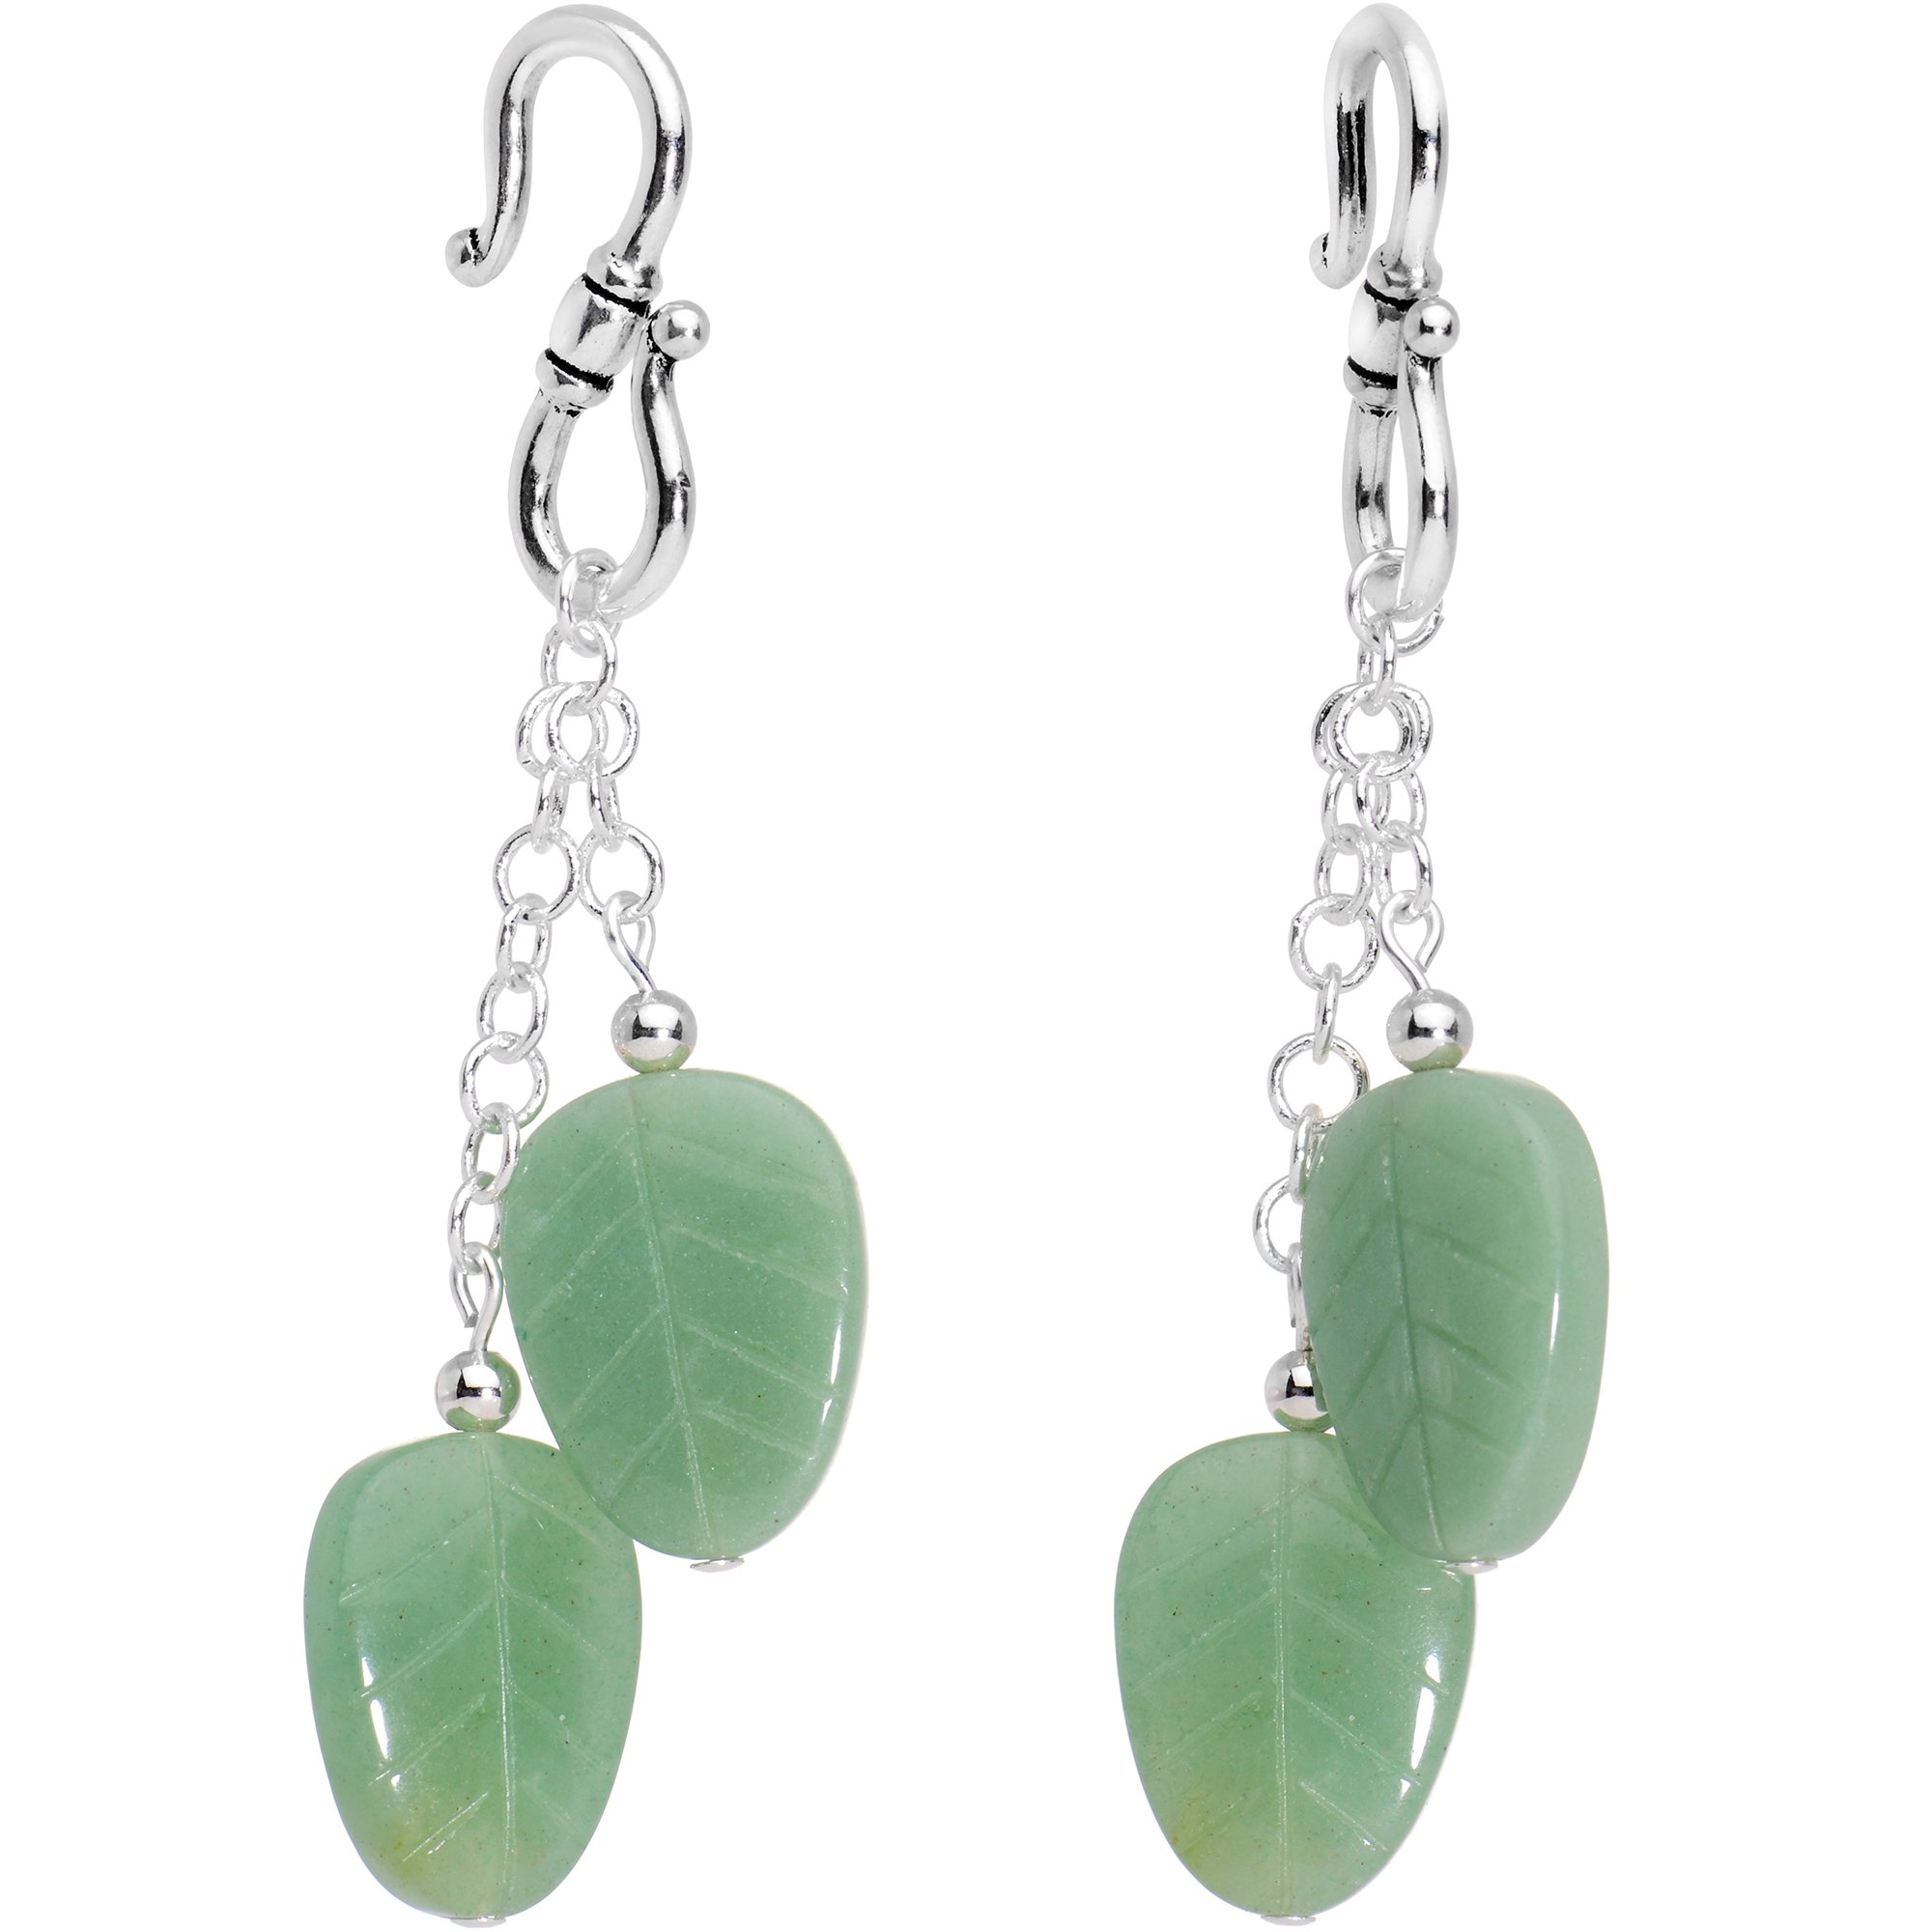 Body Candy Handcrafted Green Leaf Natural Aventurine Stone Silver Plated Hook Ear Weights